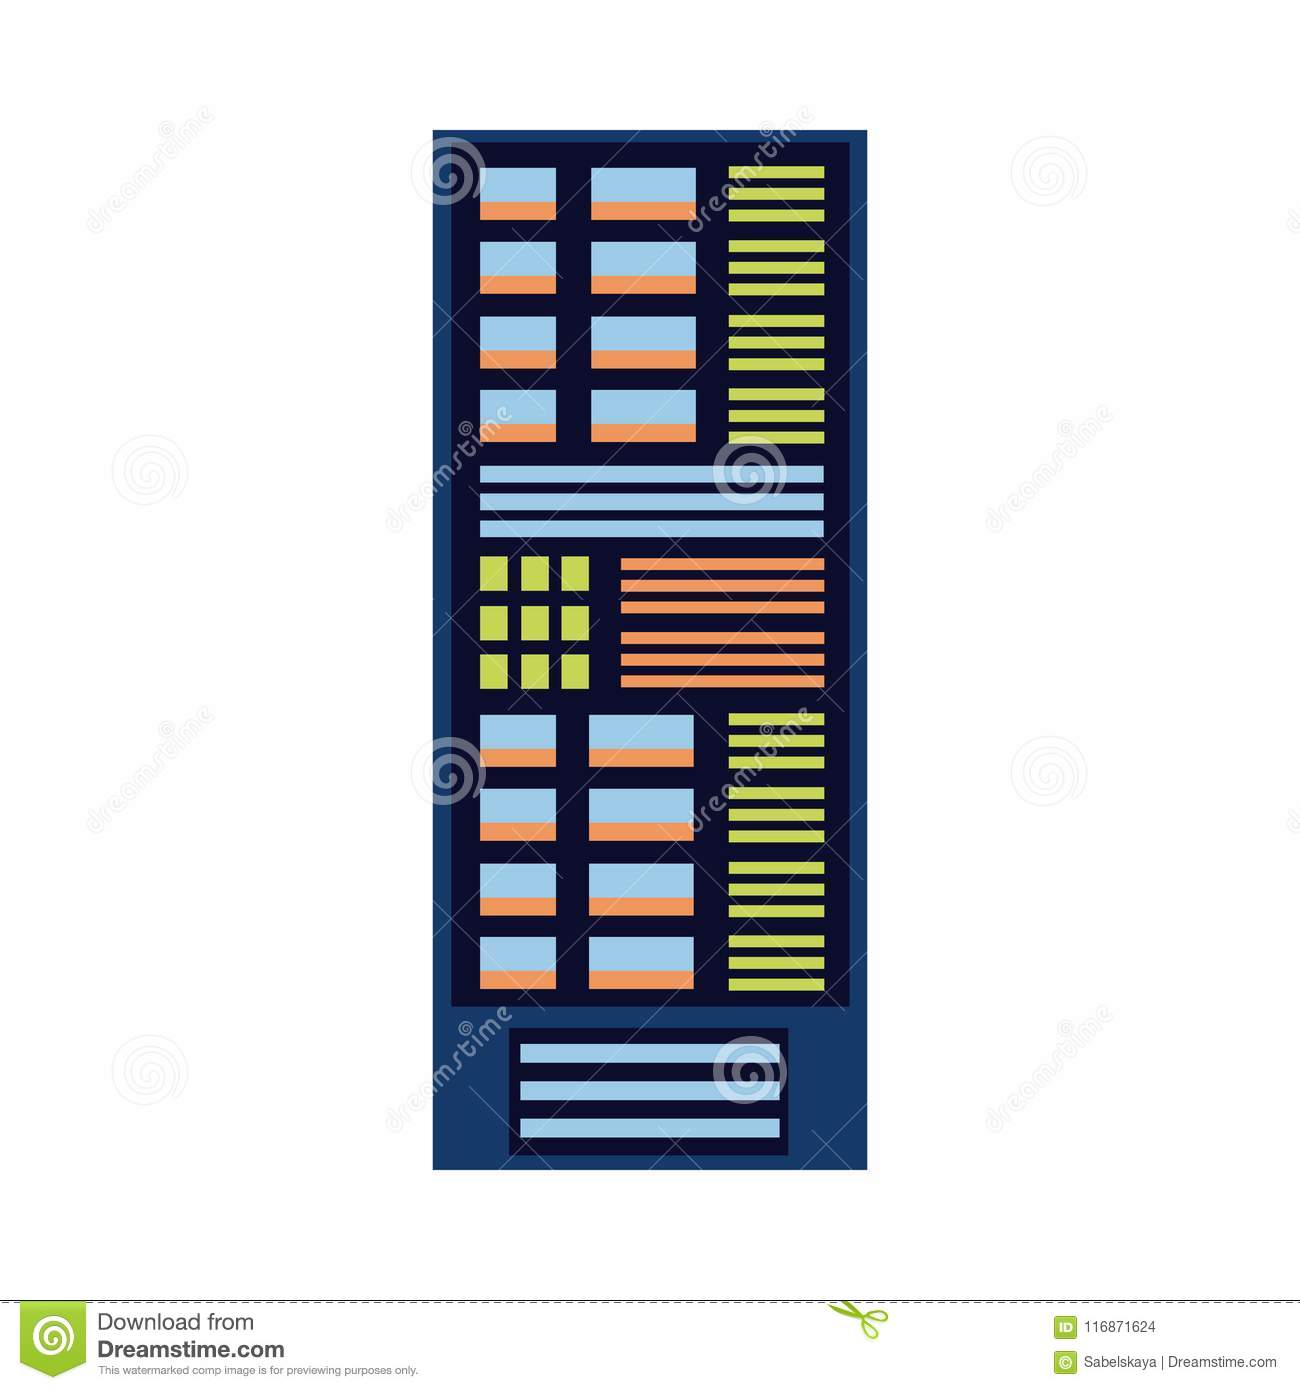 vector flat server rack at data center stock vector - illustration